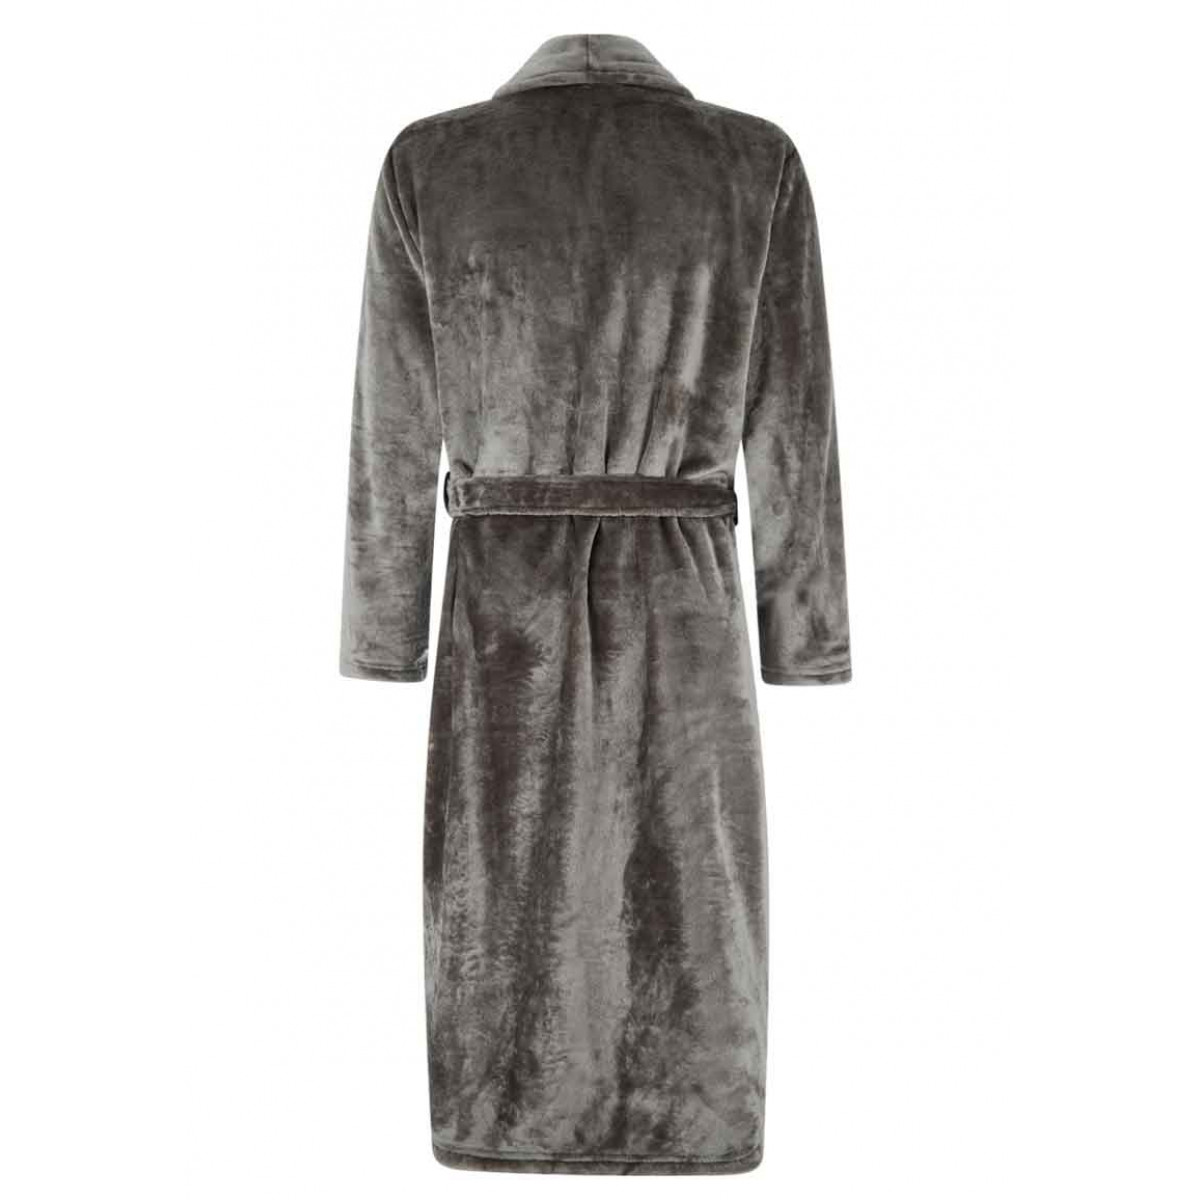 Fleece Bademantel Grau Herren